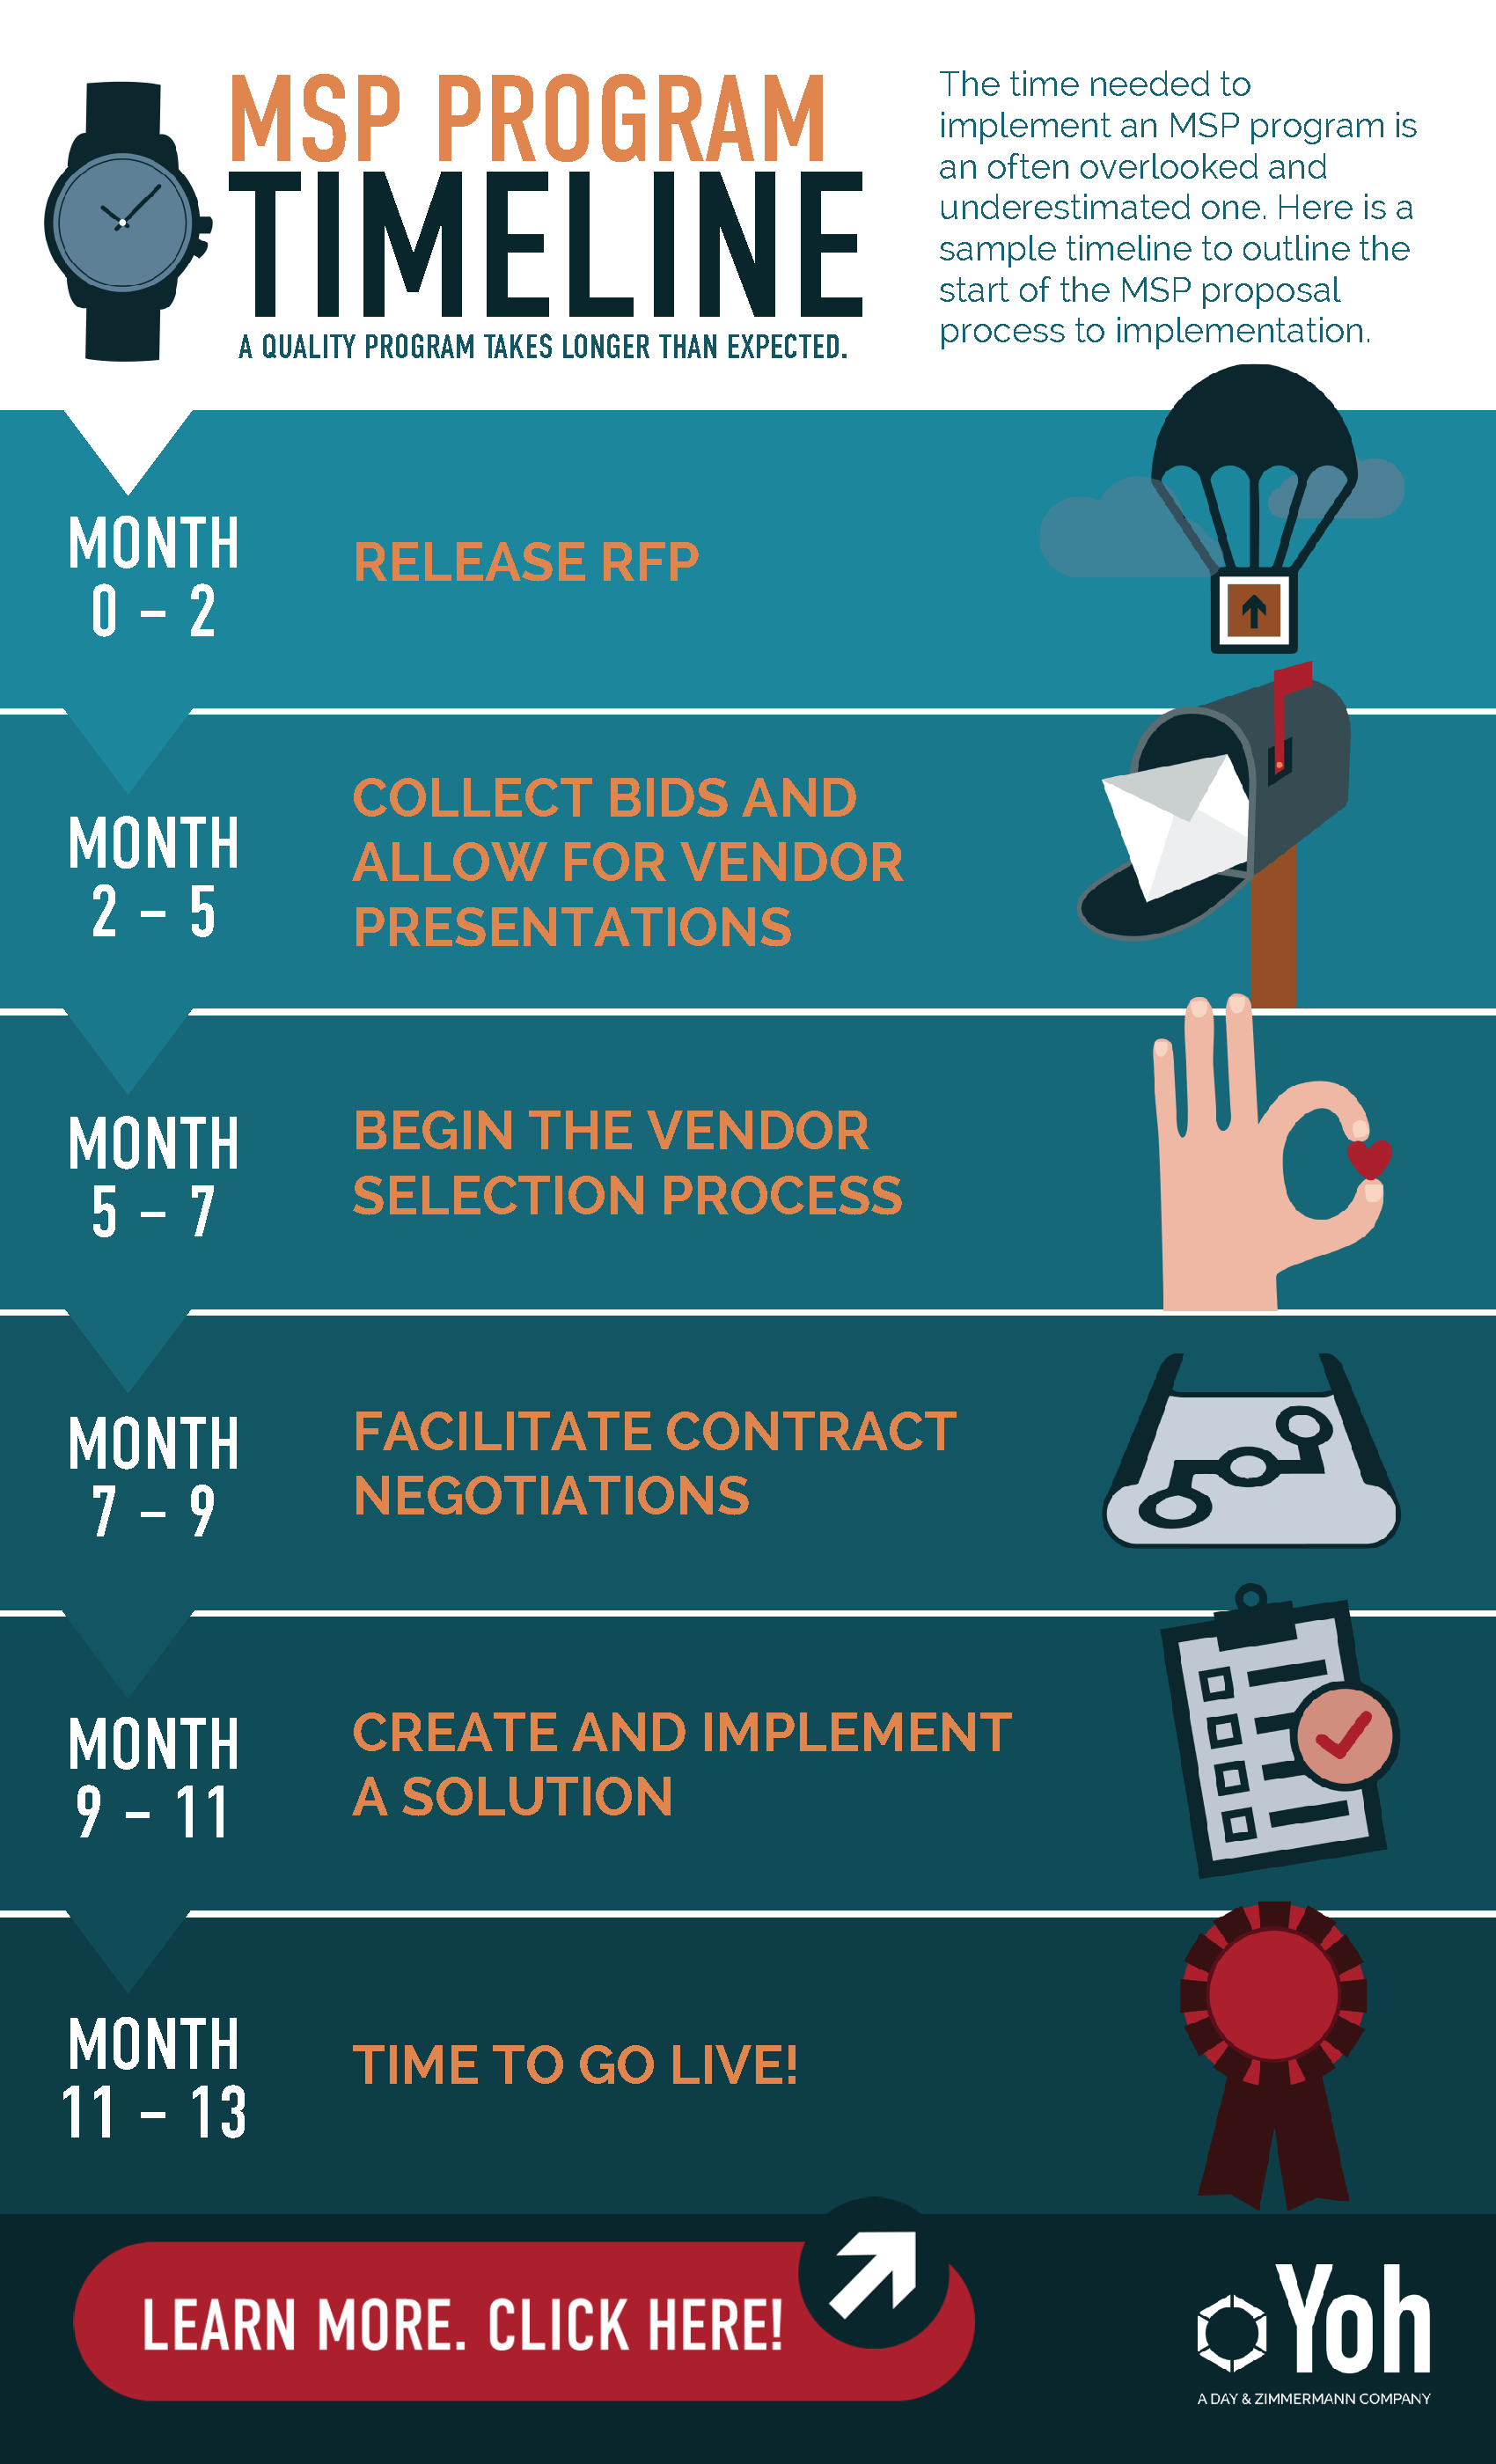 Yoh-MSP-Timeline-_Infographic.png